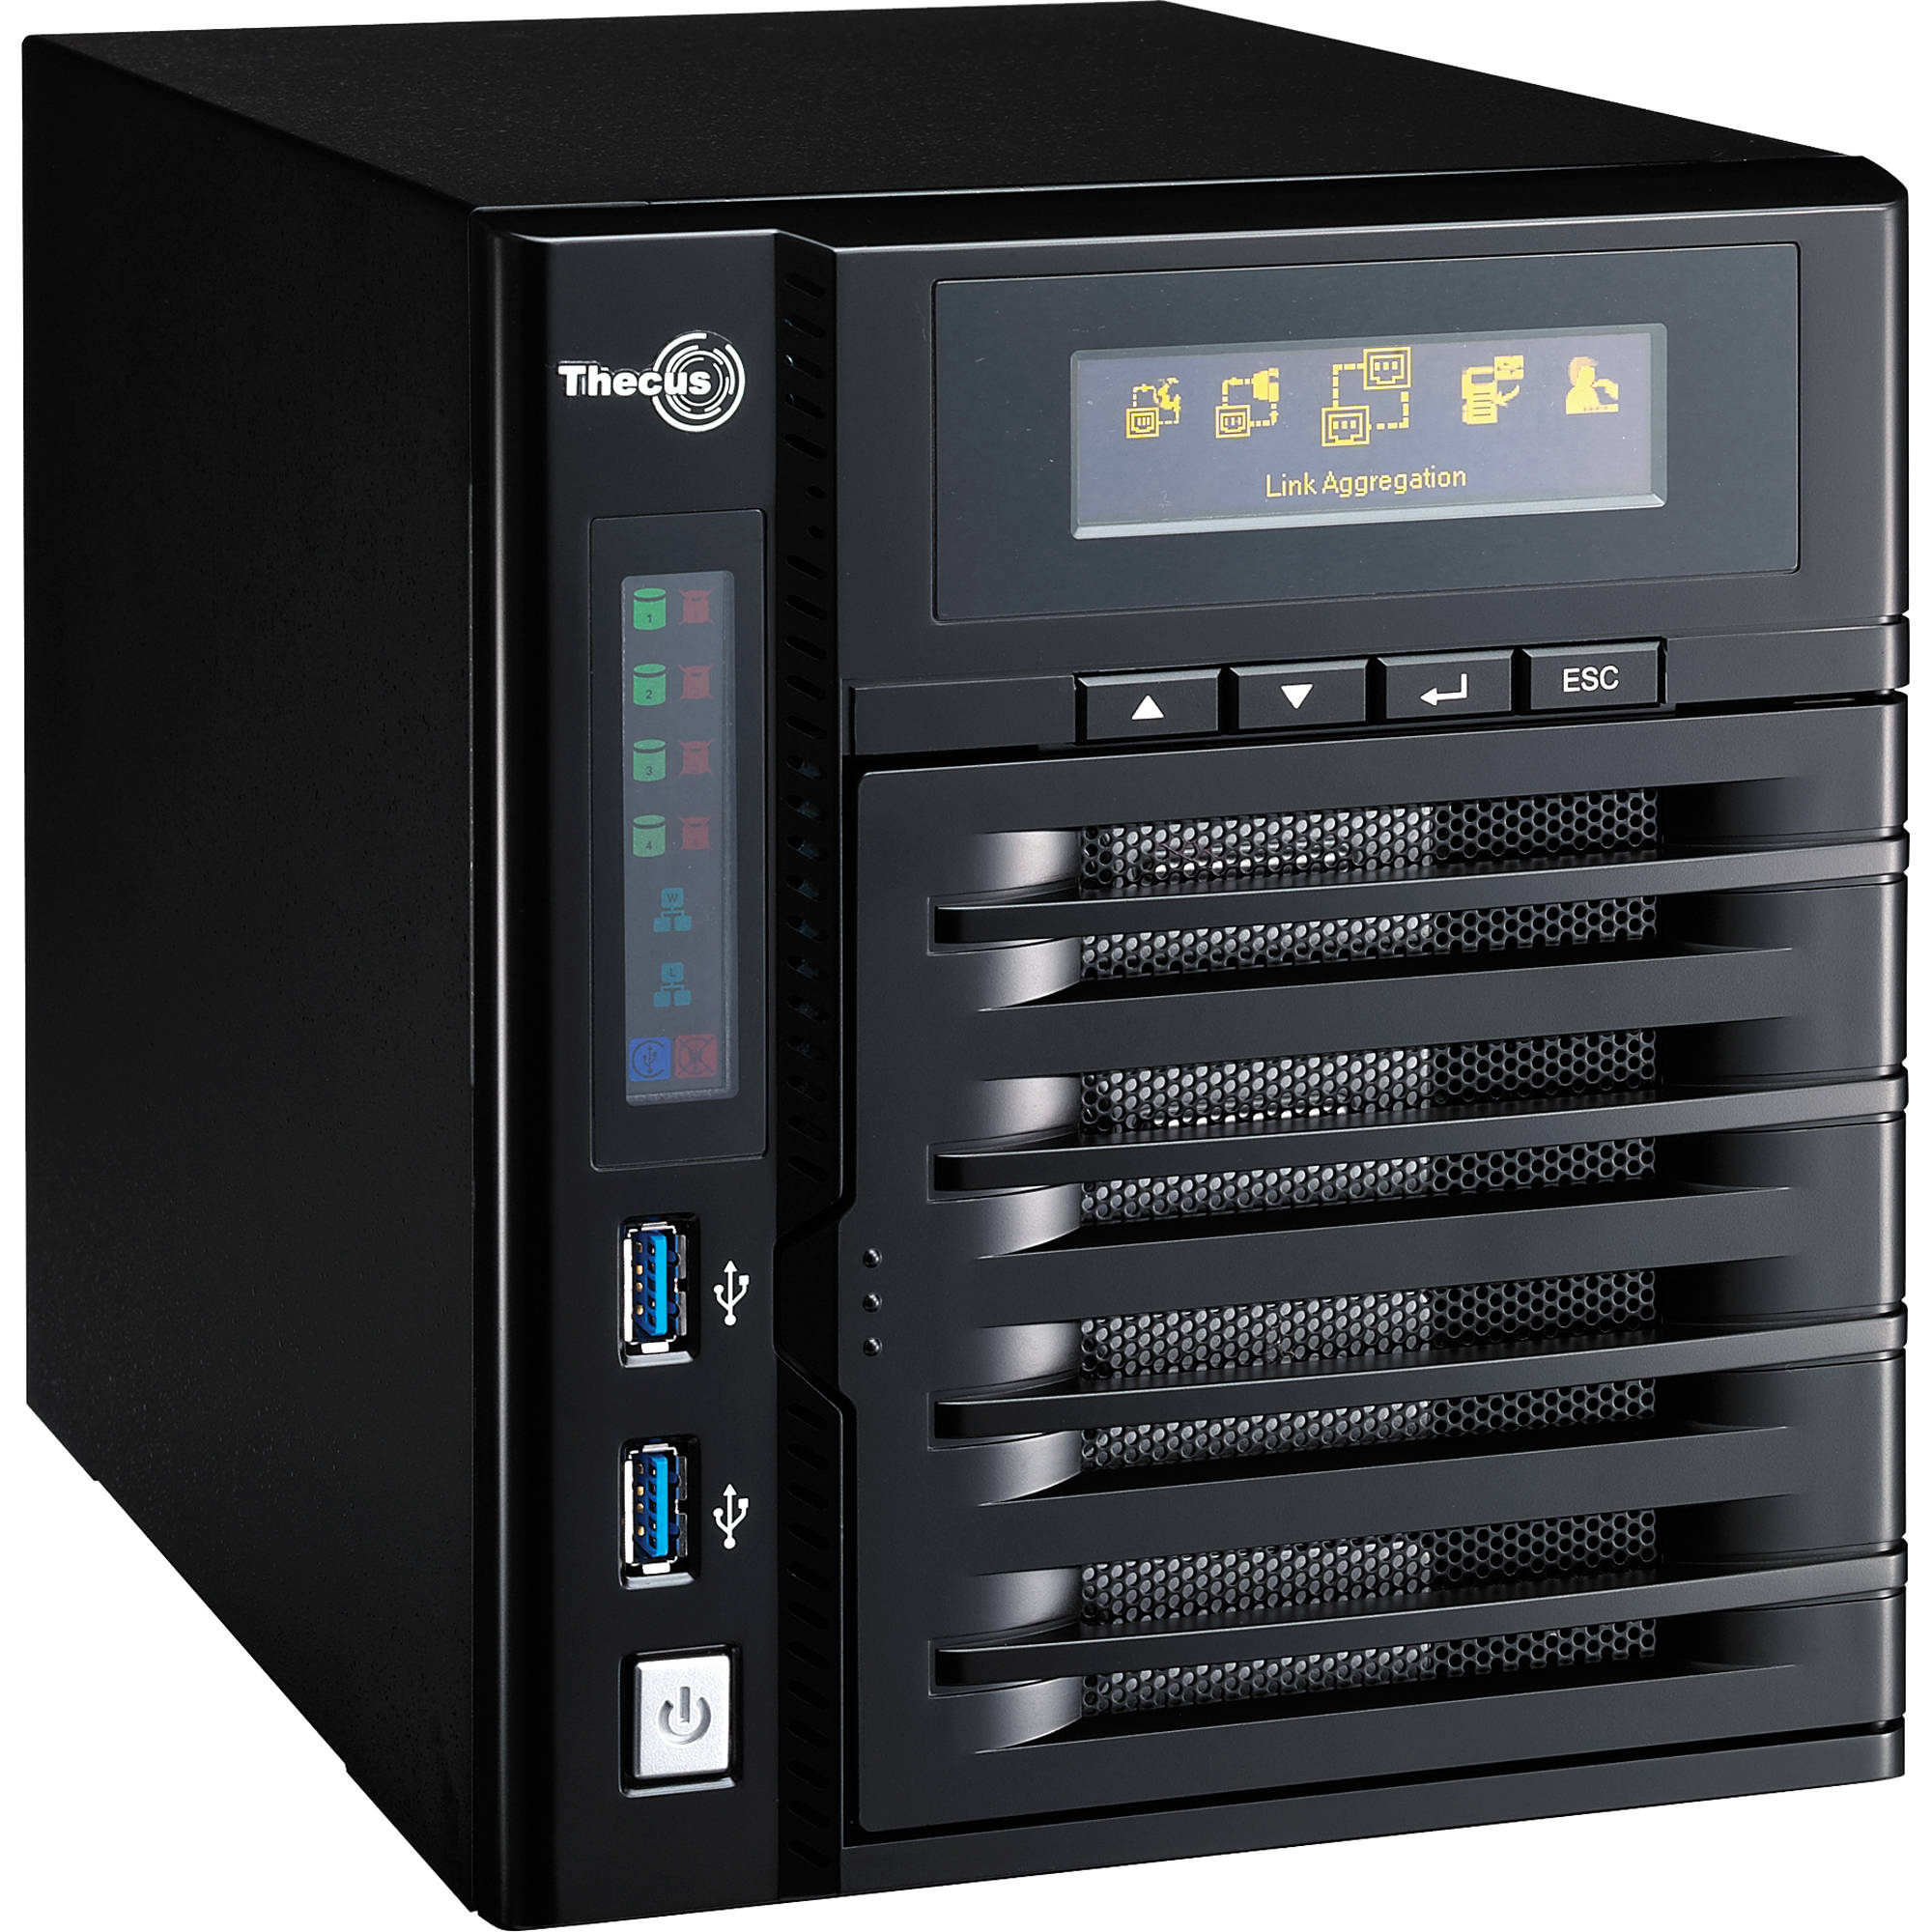 Thecus N4800 NAS Server Linux